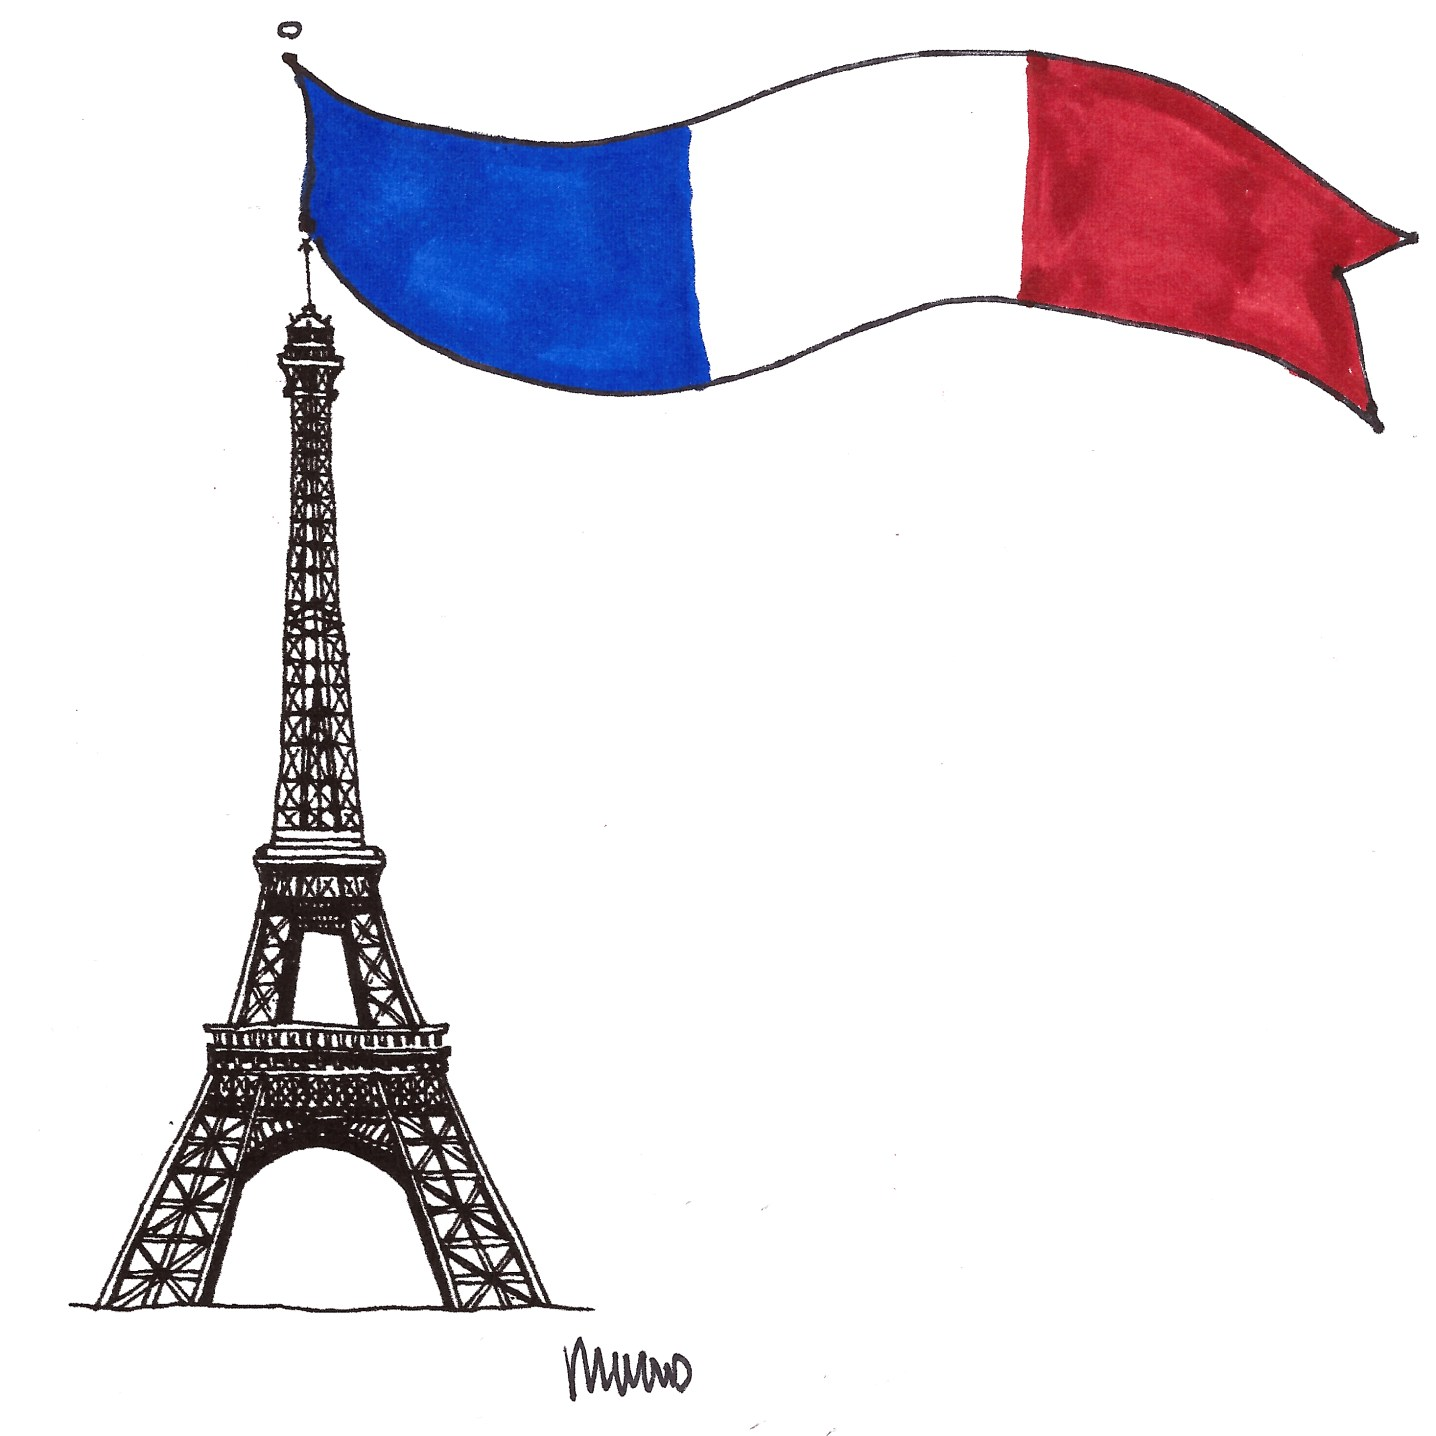 Eiffel Tower and French Flag Illustration by M Wood - Around Here…November 2015 at www.elistonbutton.com - Eliston Button - That Crafty Kid